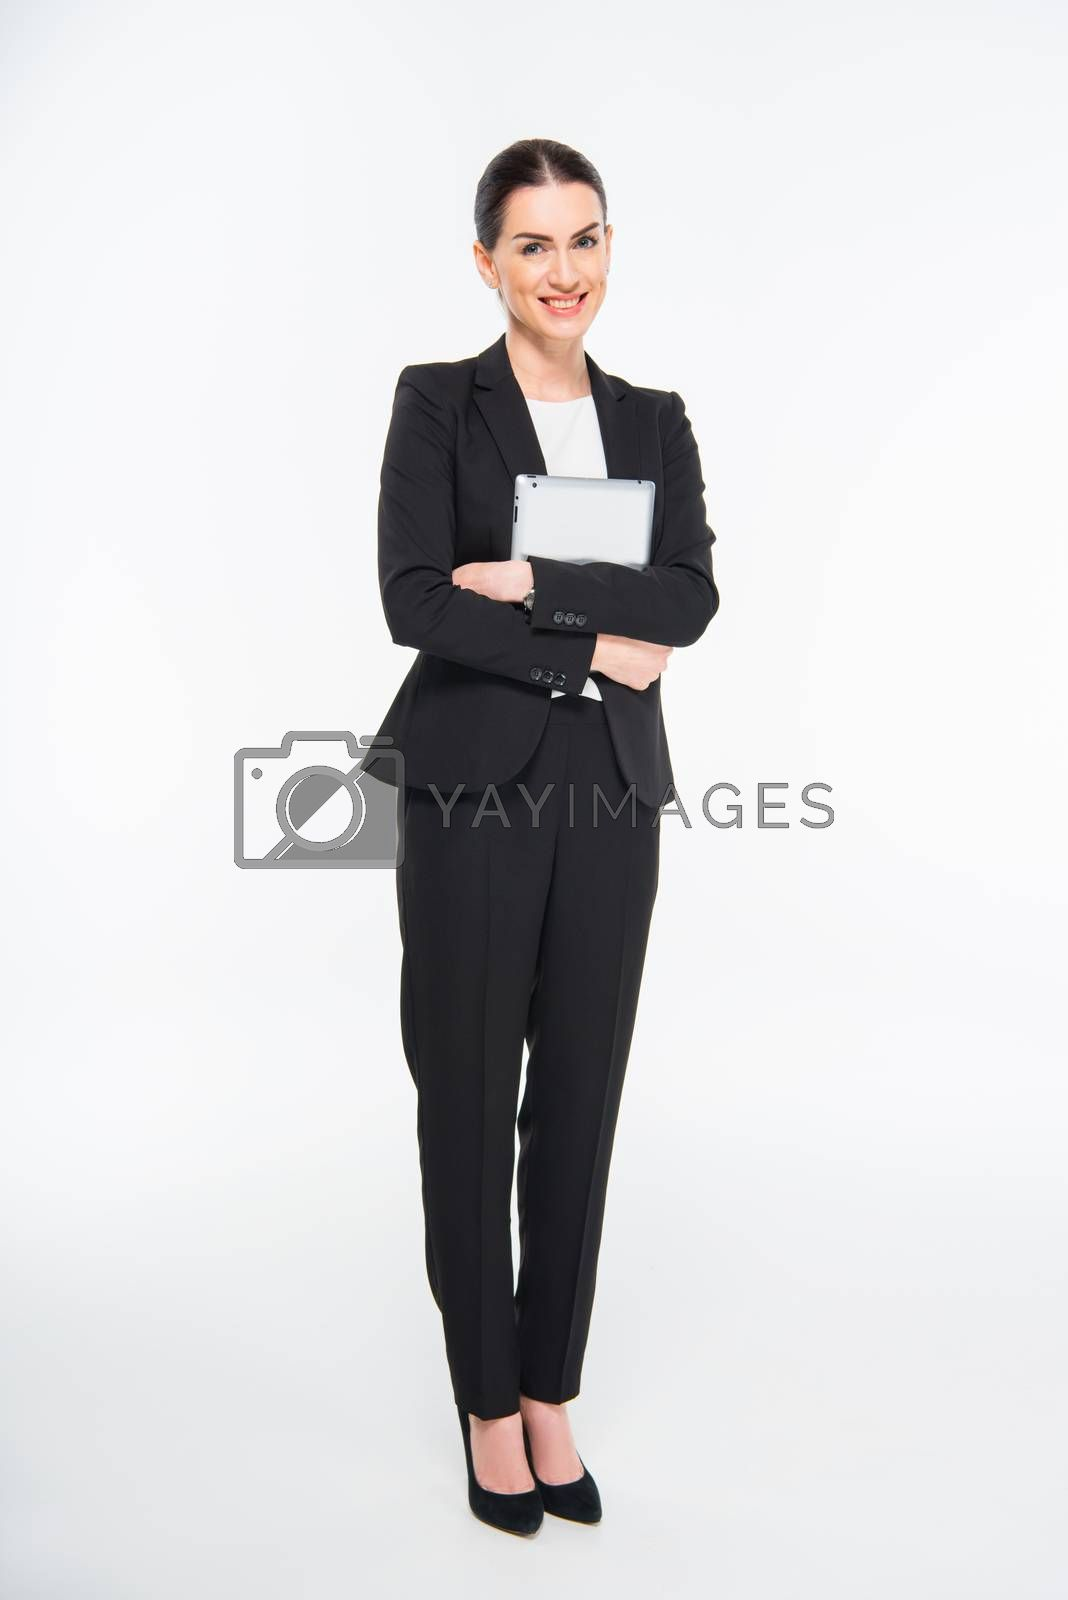 Businesswoman holding digital tablet and smiling at camera